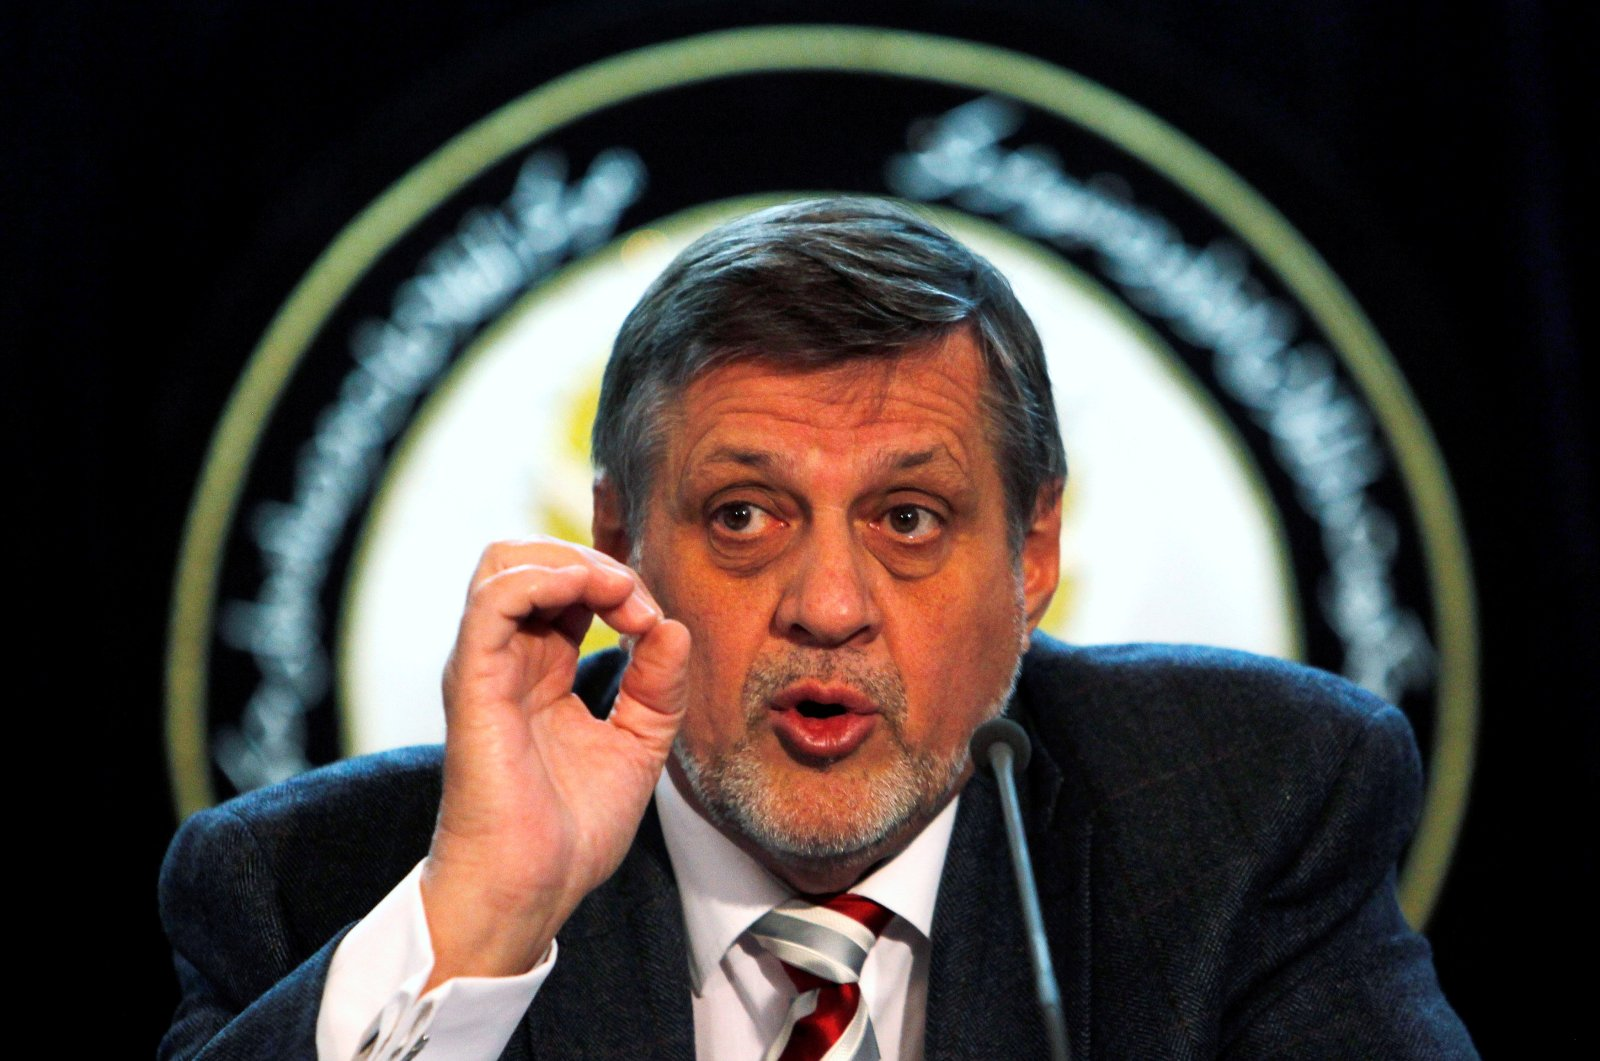 Jan Kubis, the former special representative of the secretary-general and head of the United Nations Assistance Mission in Afghanistan (UNAMA), speaks during a news conference in Kabul, Afghanistan, March 27, 2013. (Reuters File Photo)